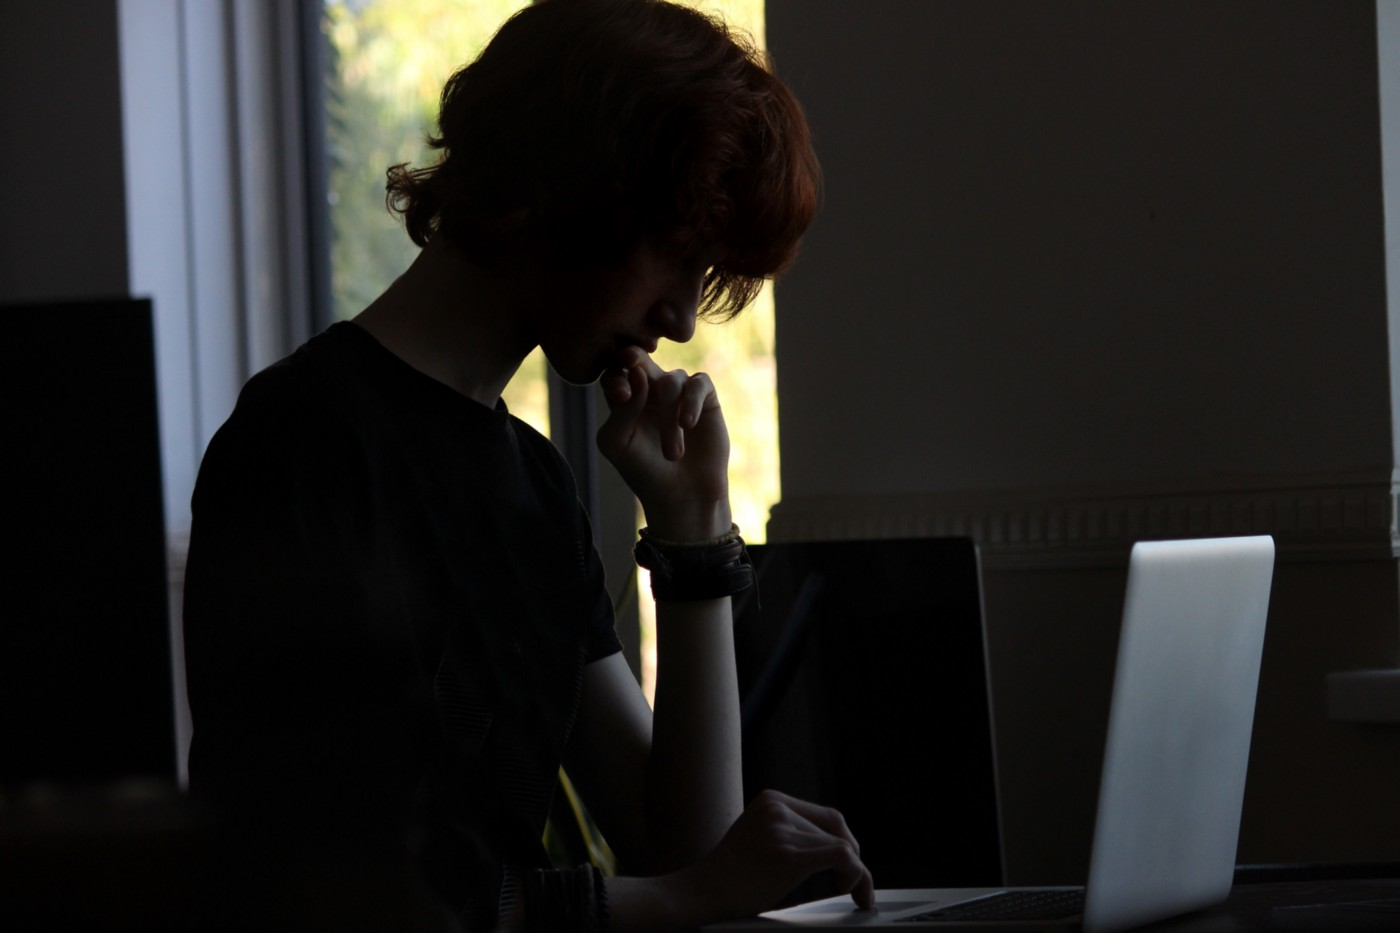 Dark image of a boy on his laptop.